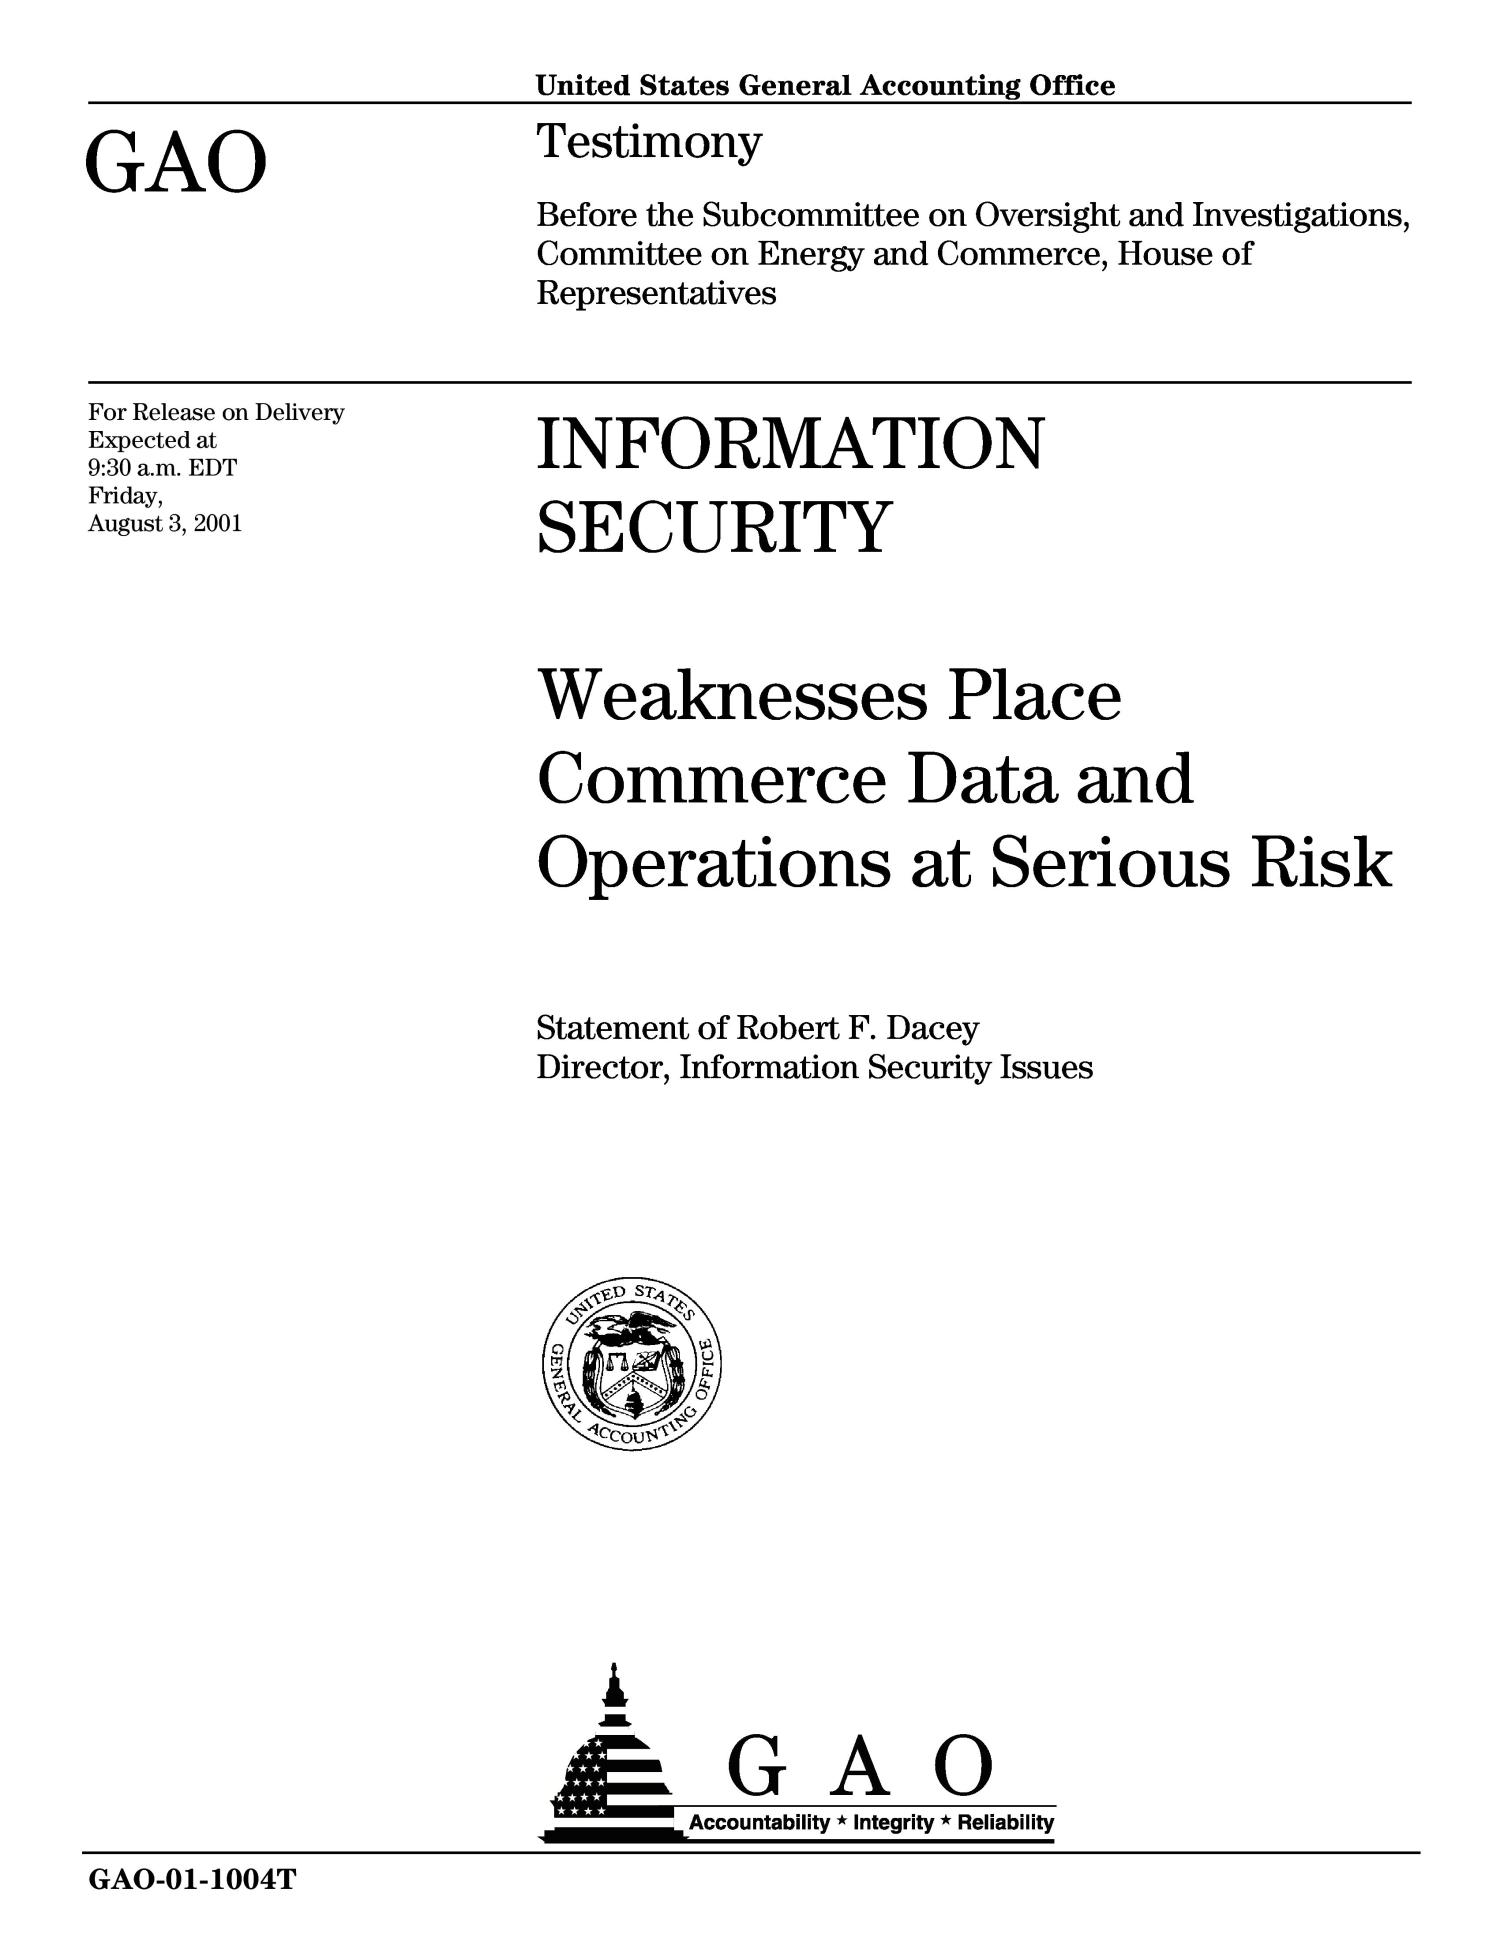 Information Security: Weaknesses Place Commerce Data and Operations at Serious Risk                                                                                                      [Sequence #]: 1 of 37